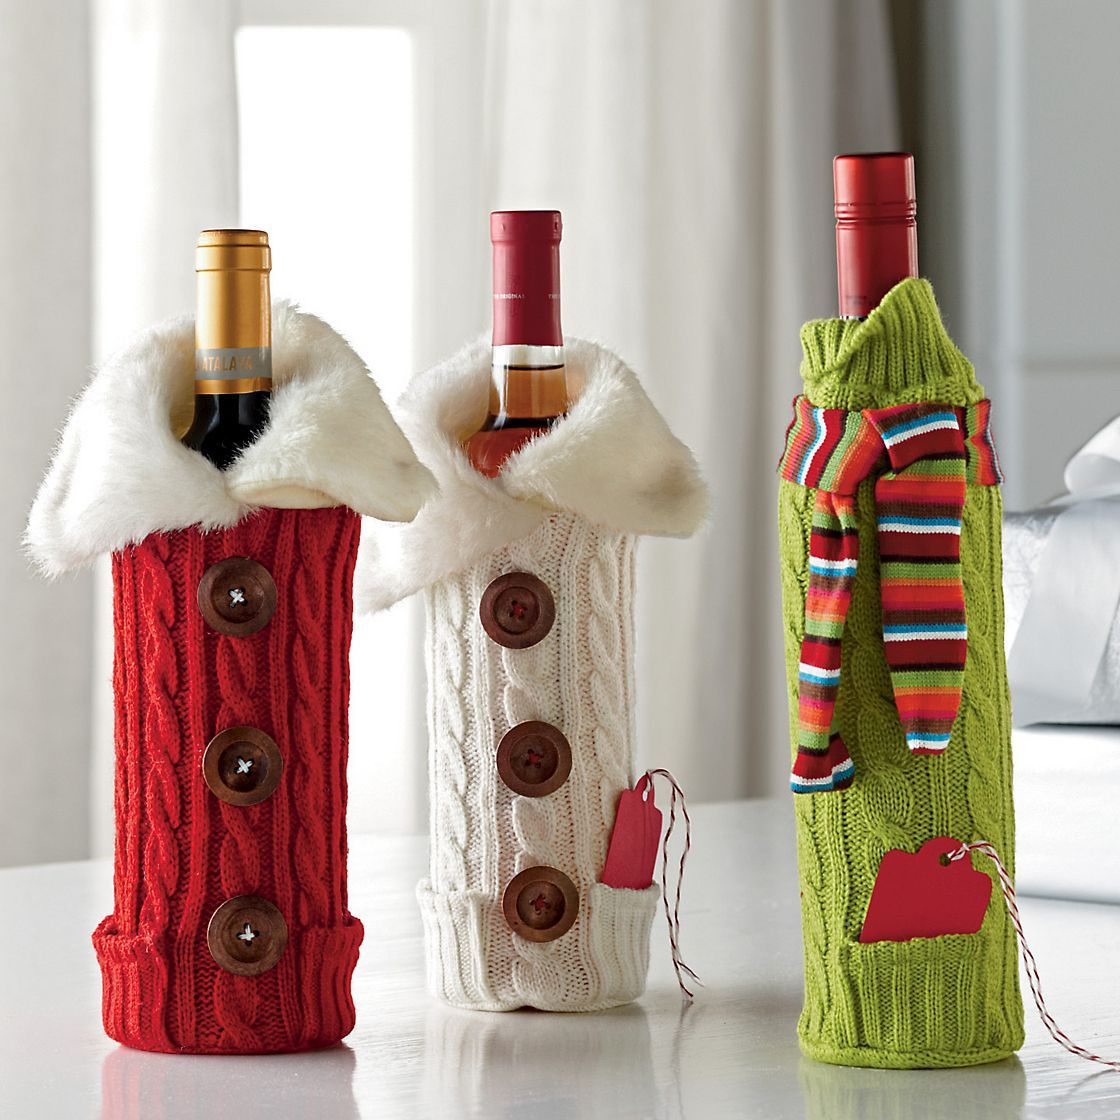 Wine Bottle Covers Red Button Fur Ivory Button Fur Green Scarf The Company Store Bottle Crafts Wine Bottle Covers Christmas Crafts